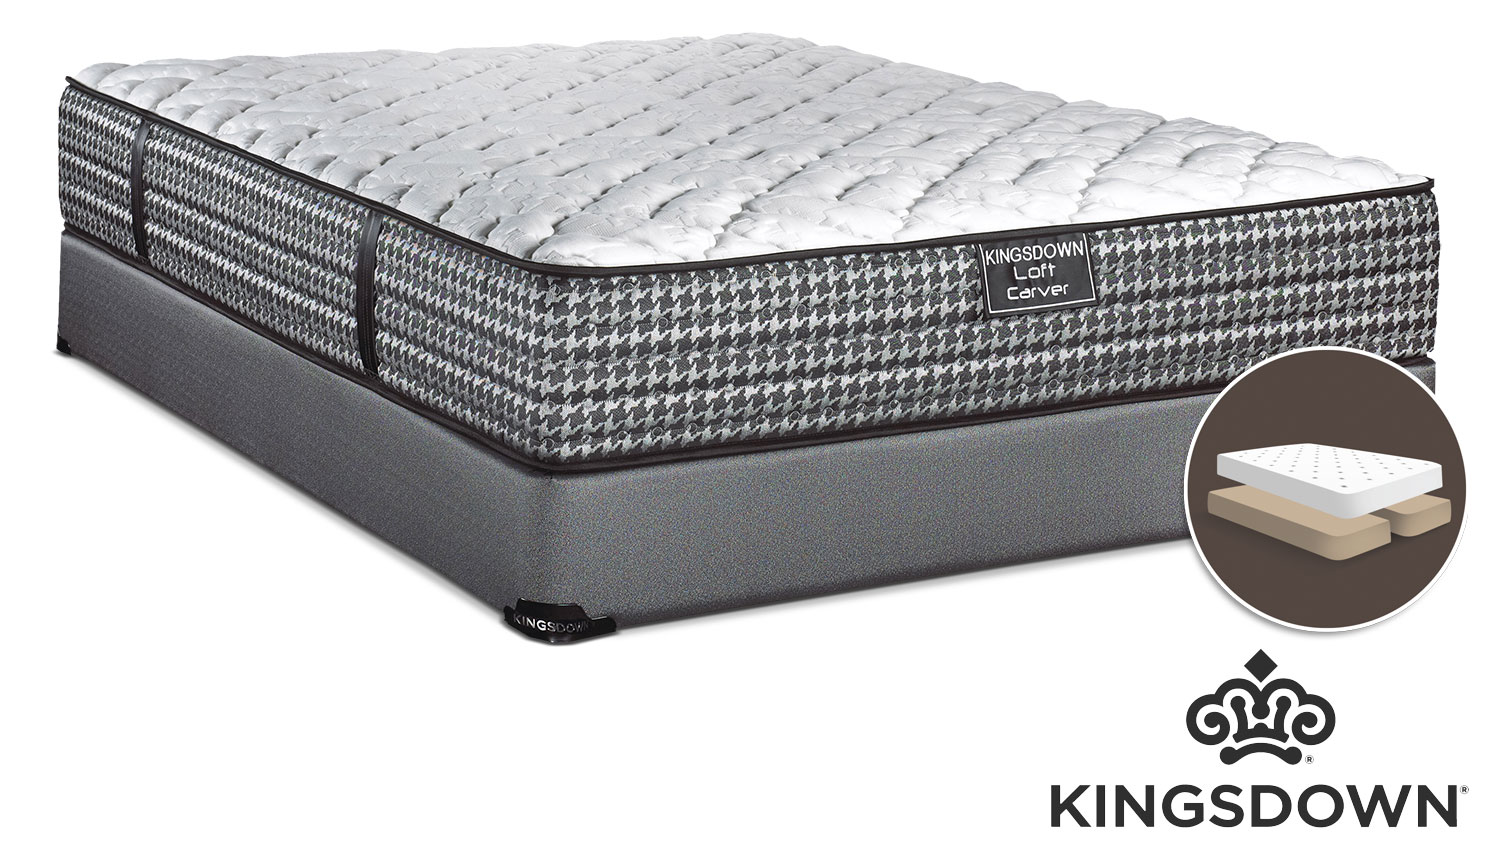 Mattresses and Bedding - Kingsdown Carver King Mattress/Boxspring Set